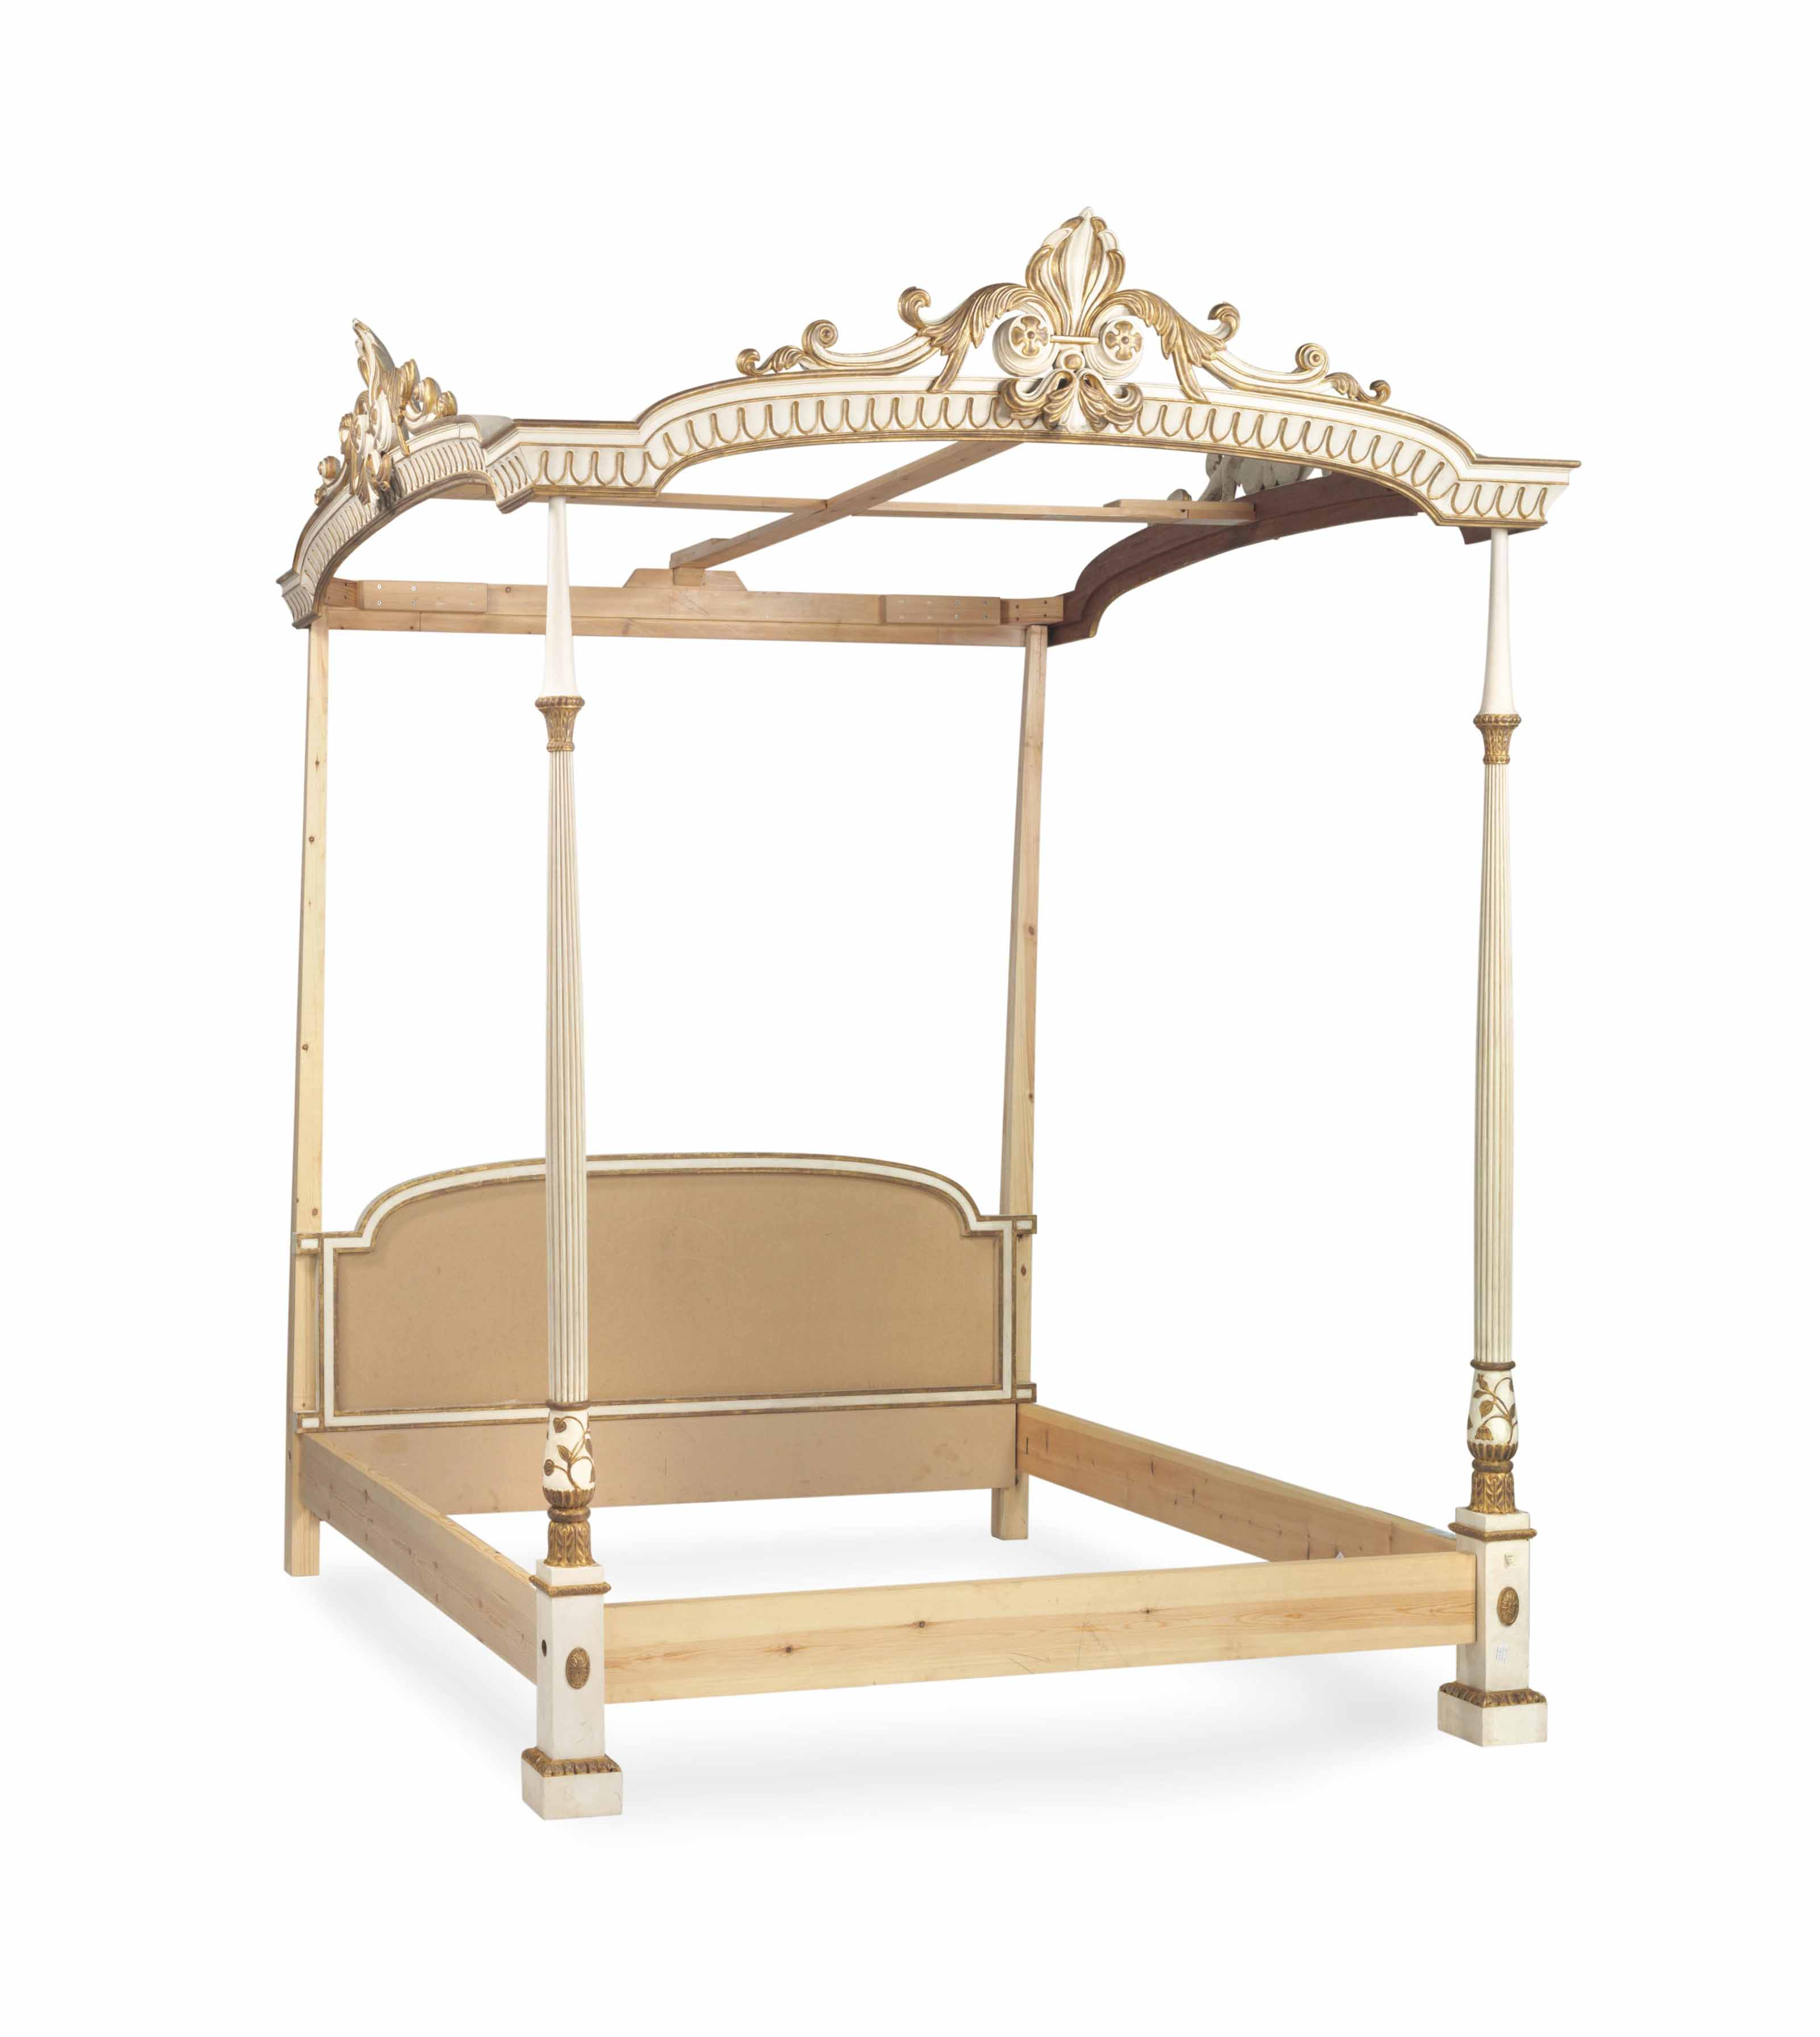 A GEORGE III STYLE WHITE PAINTED AND PARCEL GILT TESTER BED,